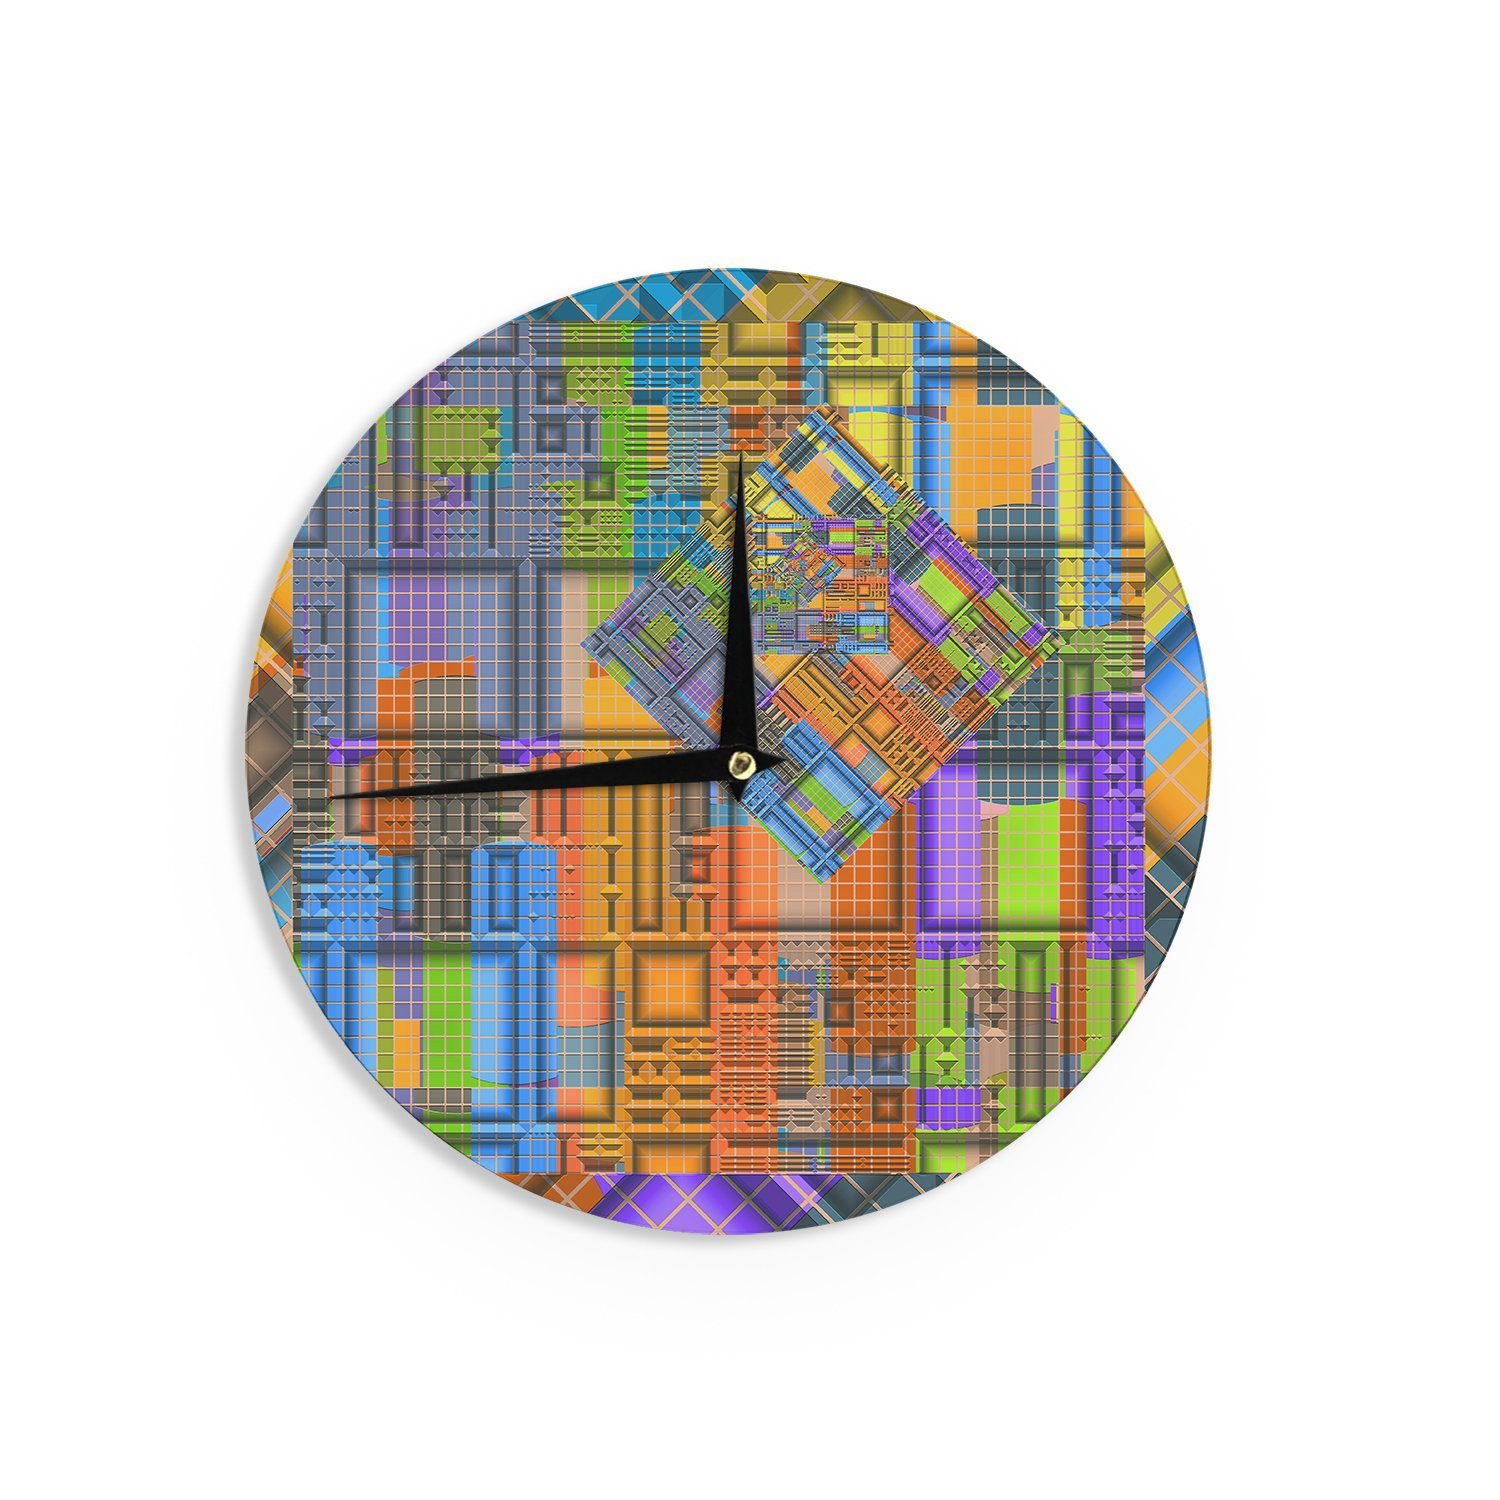 12-Inch Kess InHouse Michael Sussna Tile Rep Abstract Wall Clock